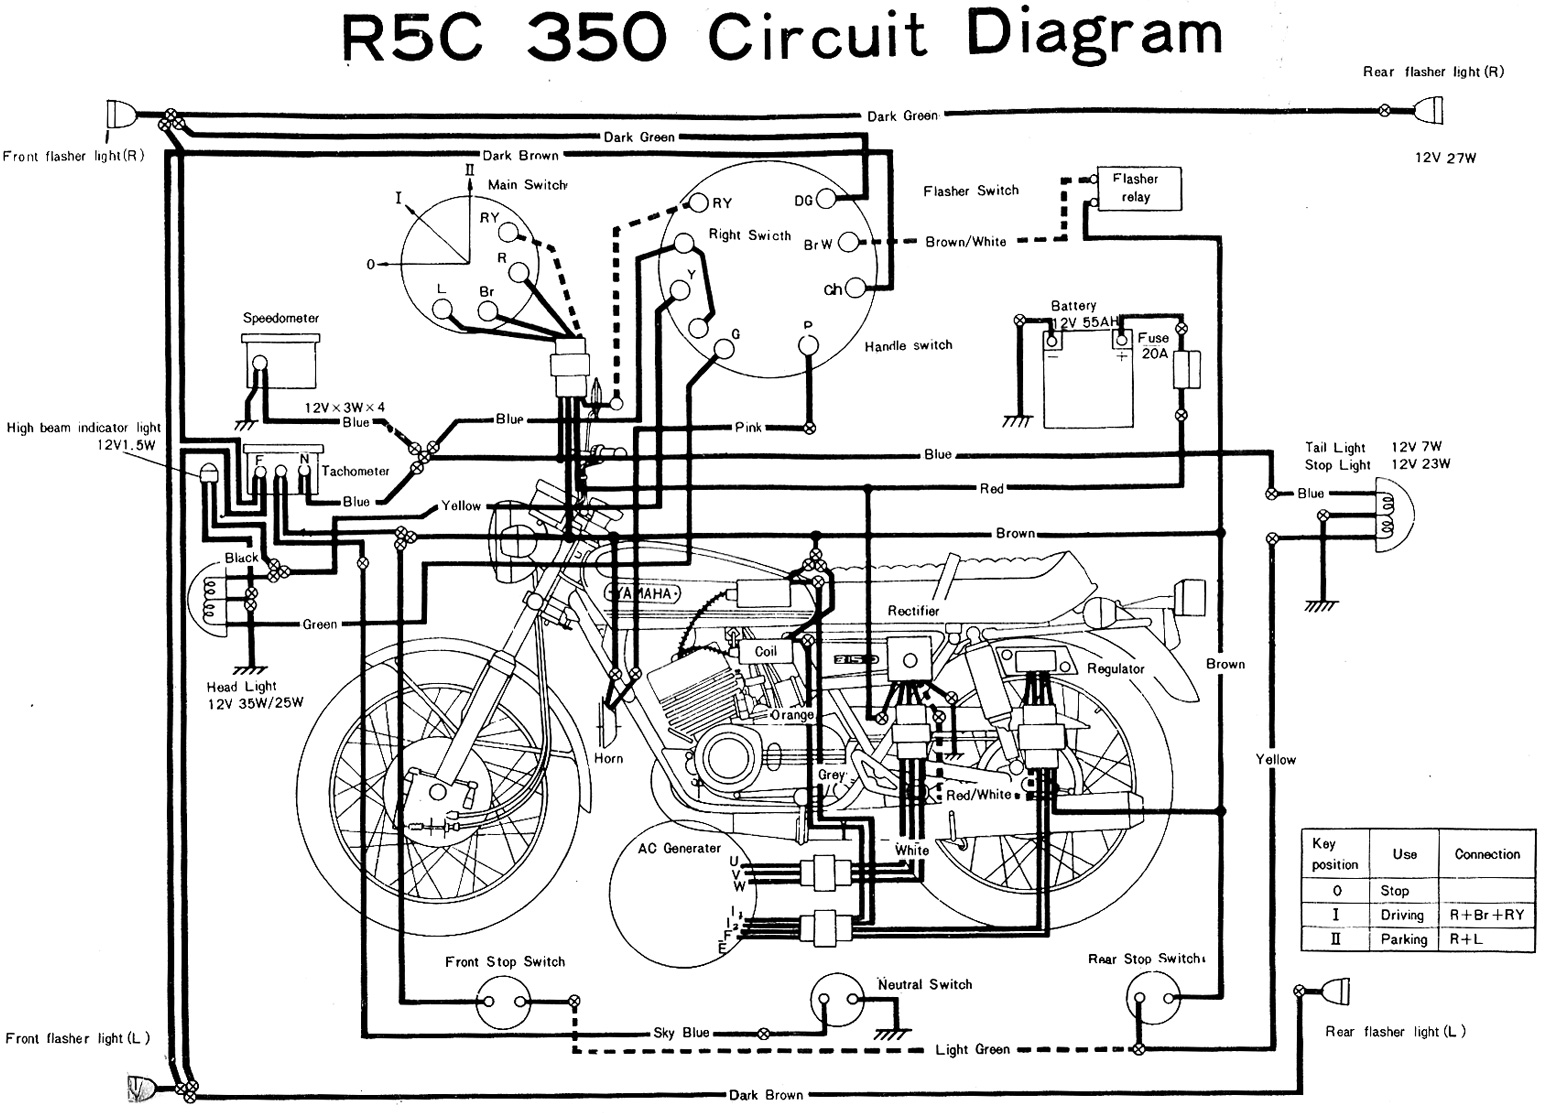 wiring diagram for motorcycle rv solar panel diagrams r5c 350